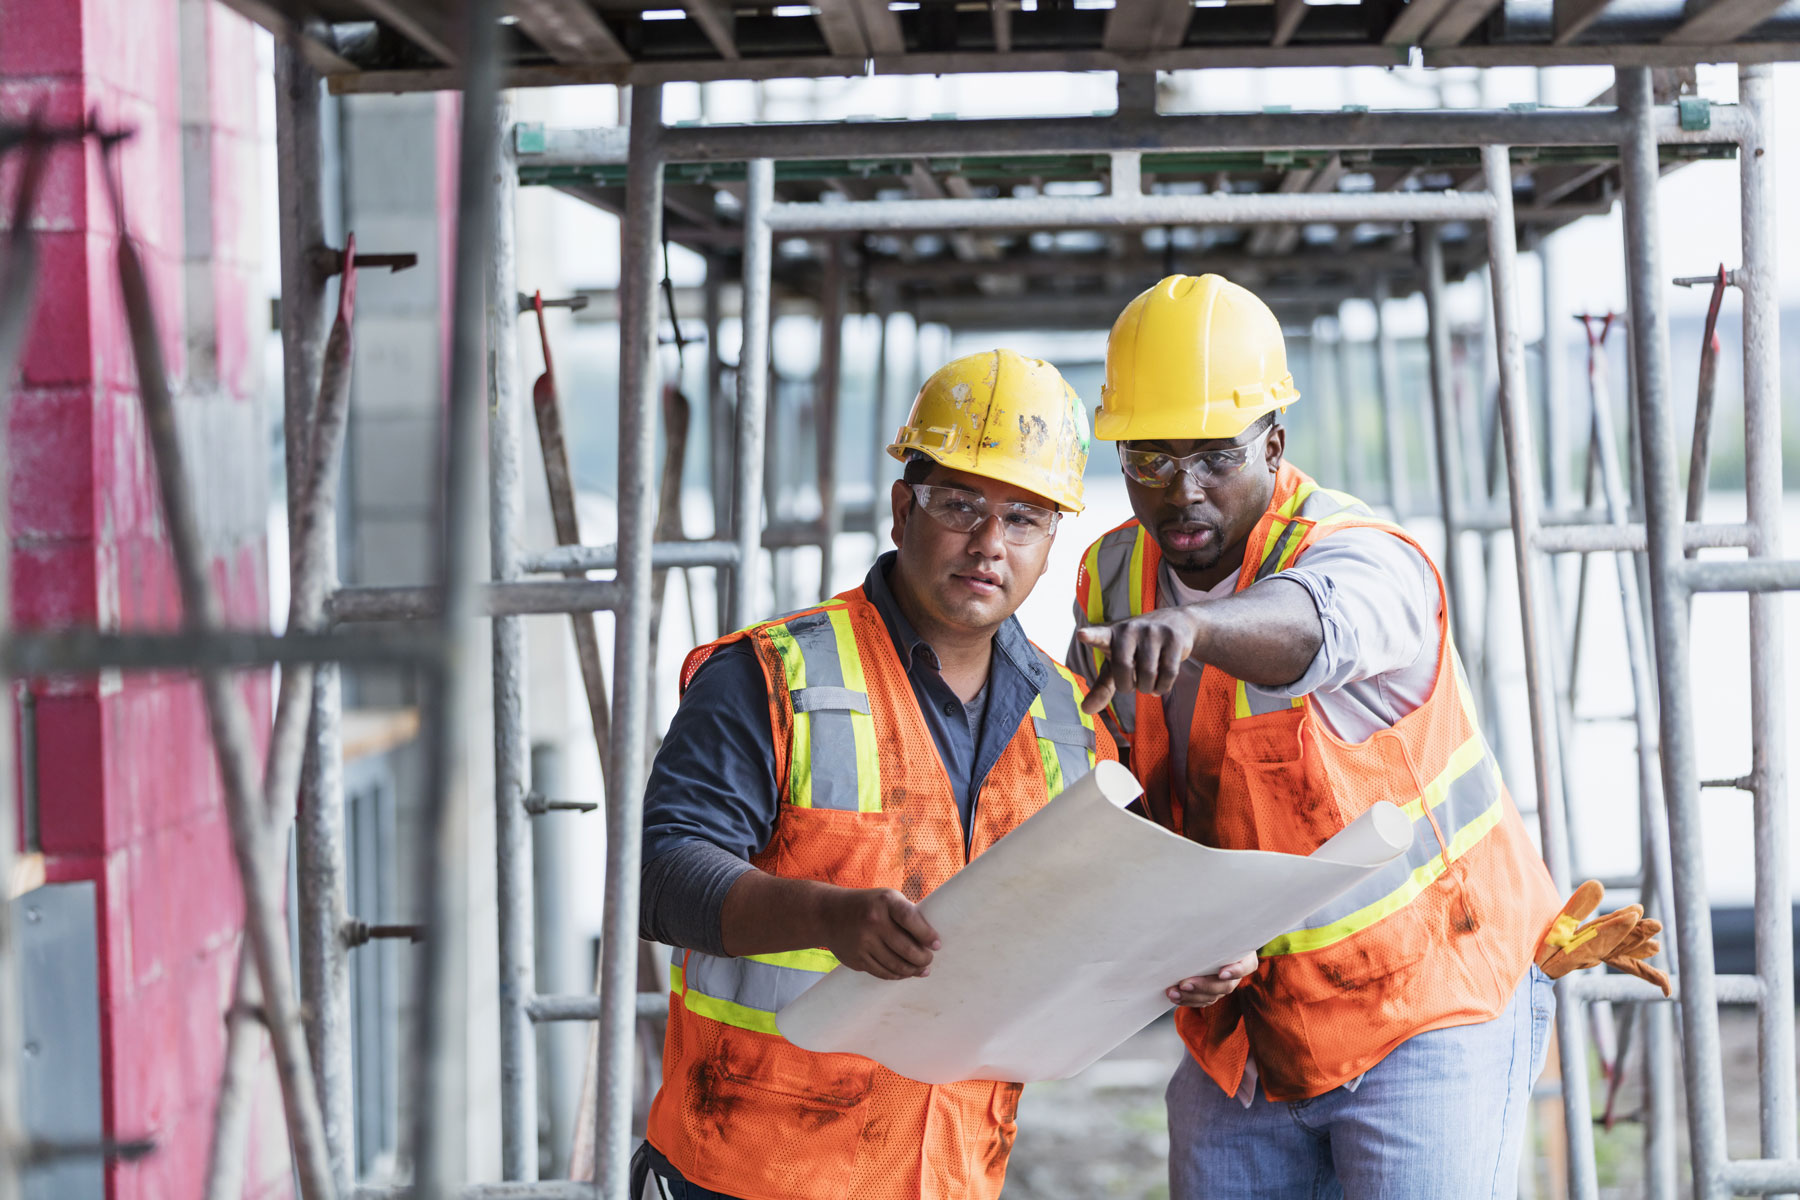 Younger hispanic construction worker learning on-the-job training from older african american worker.